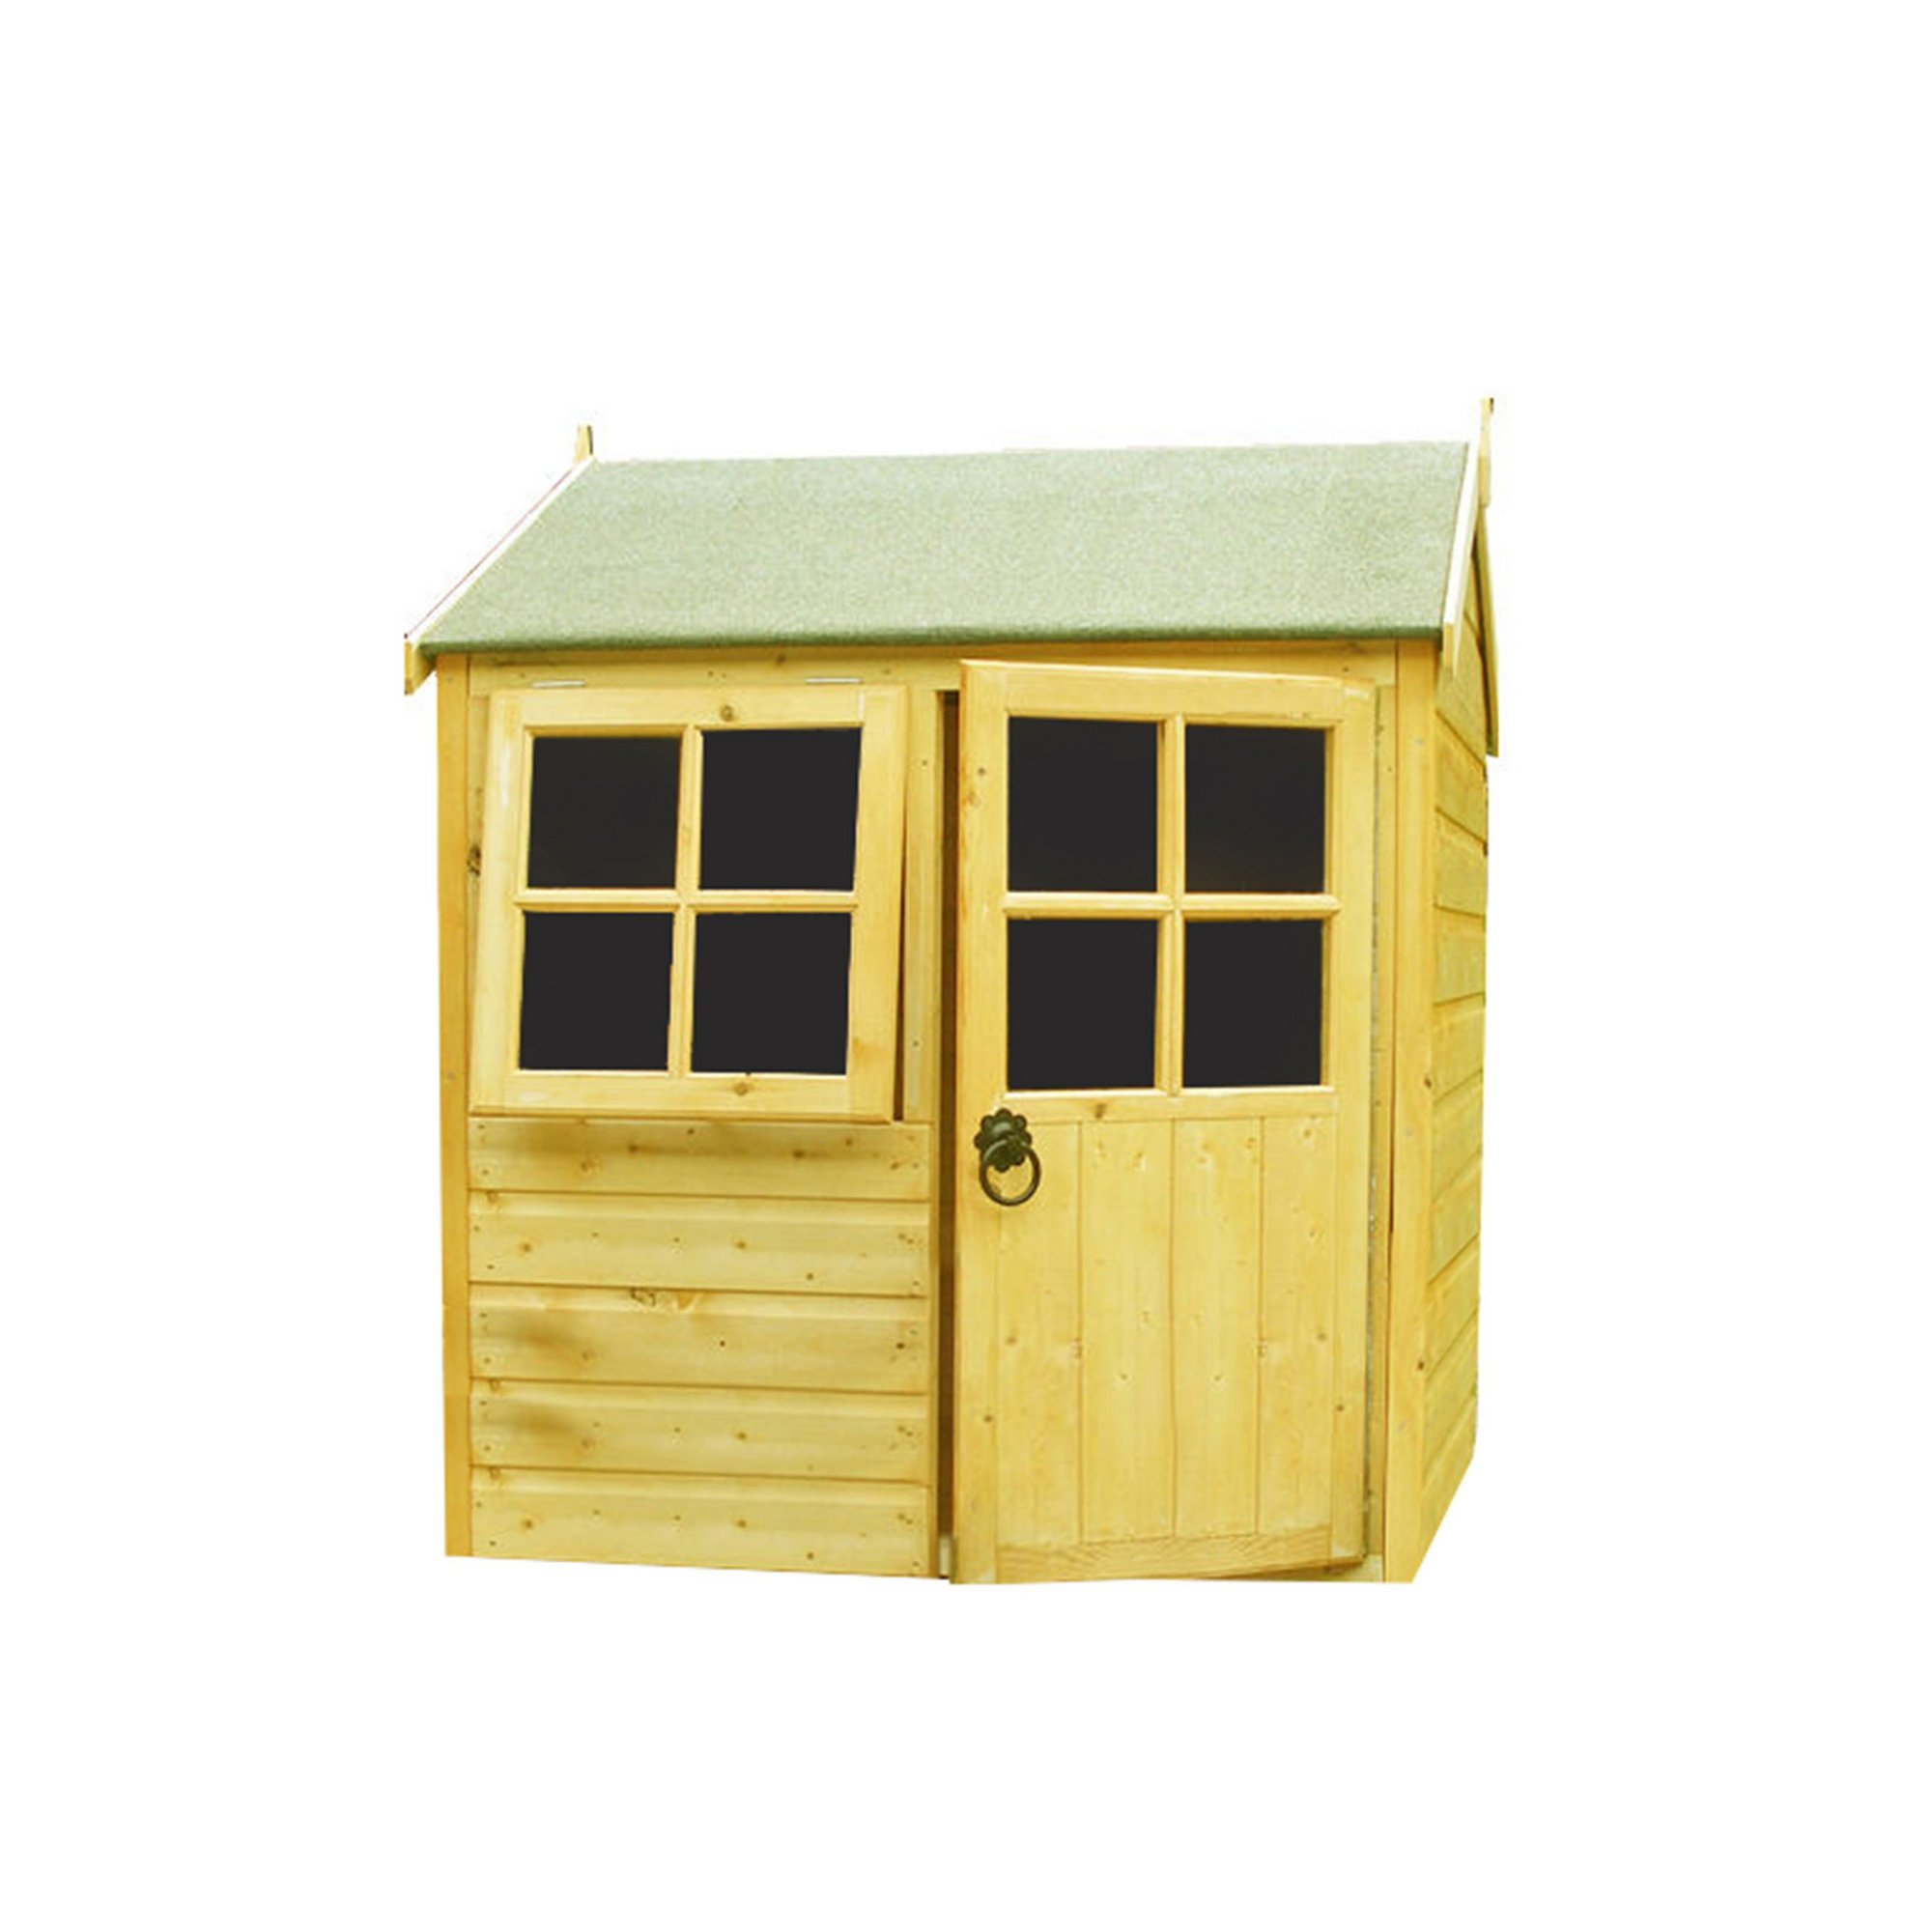 Image of 4x4 Bunny Play House with Assembly with Top Coat